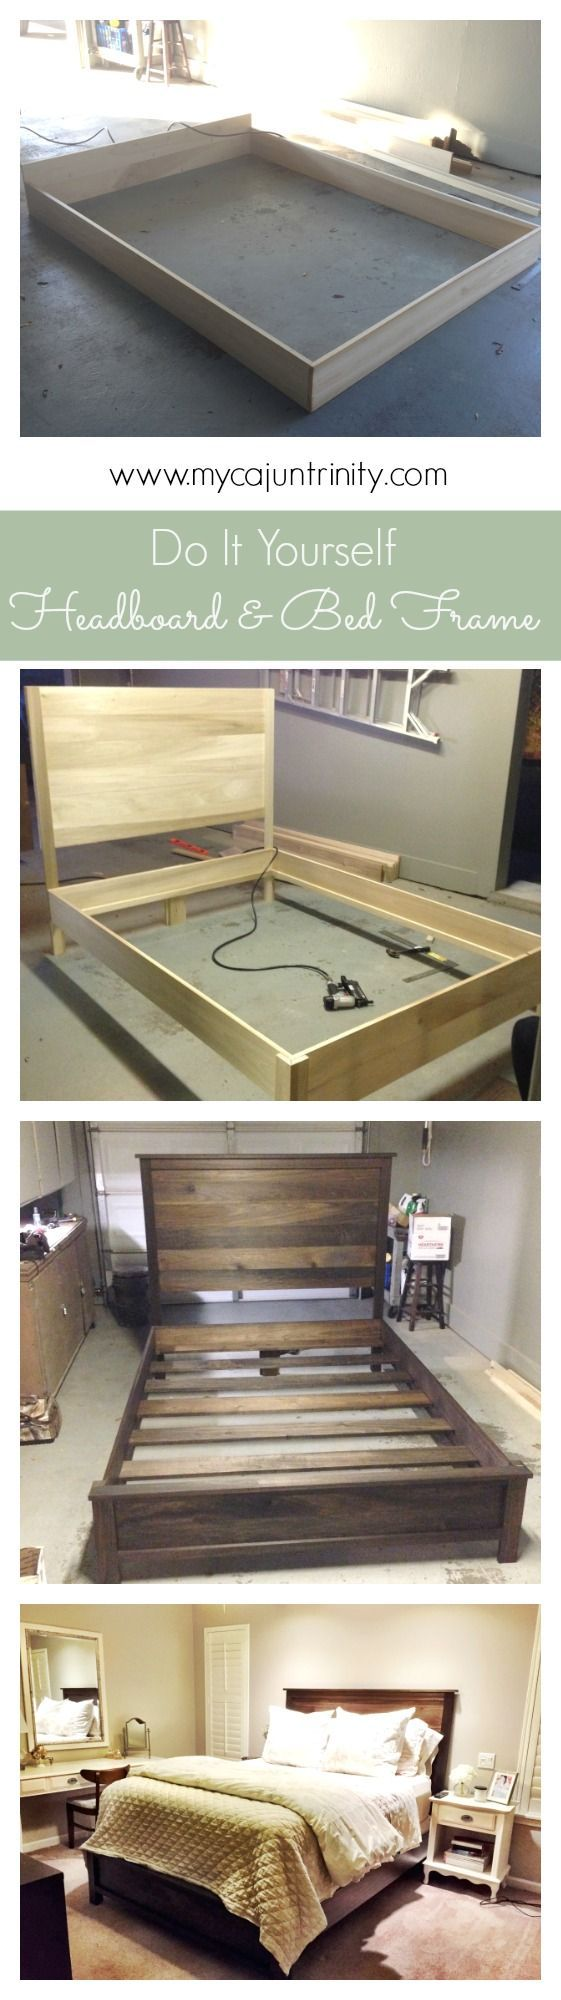 Step-by-step instructions on how to build a headboard and bed frame. Click through to see the full post which will take you through the entire DIY project.